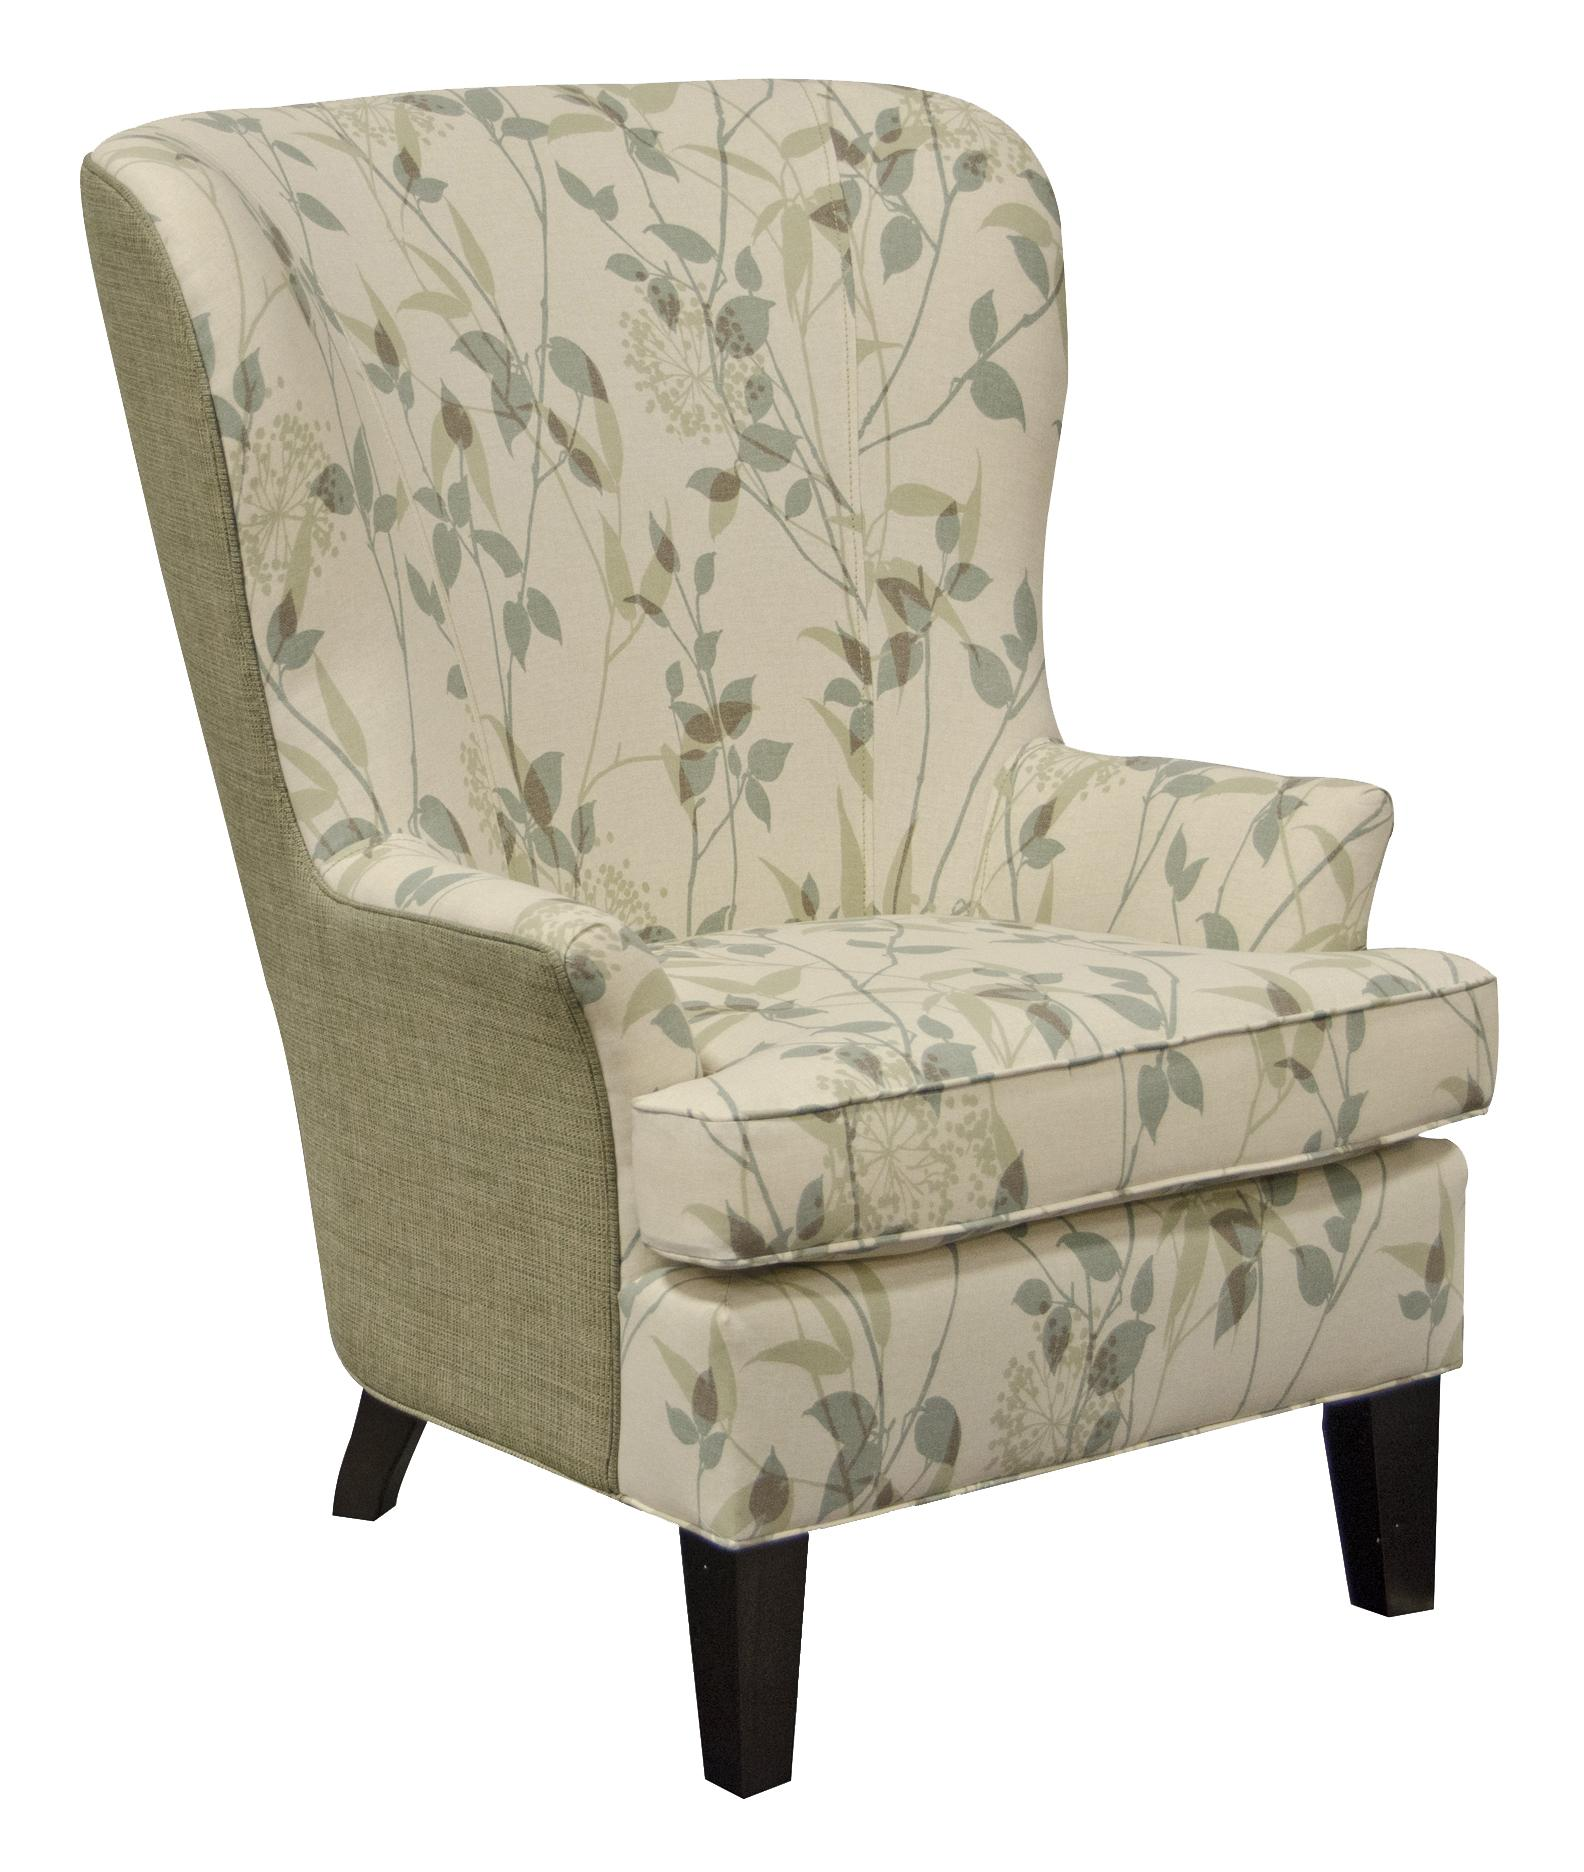 England Smith Living Room Arm Chair - Item Number: 4544